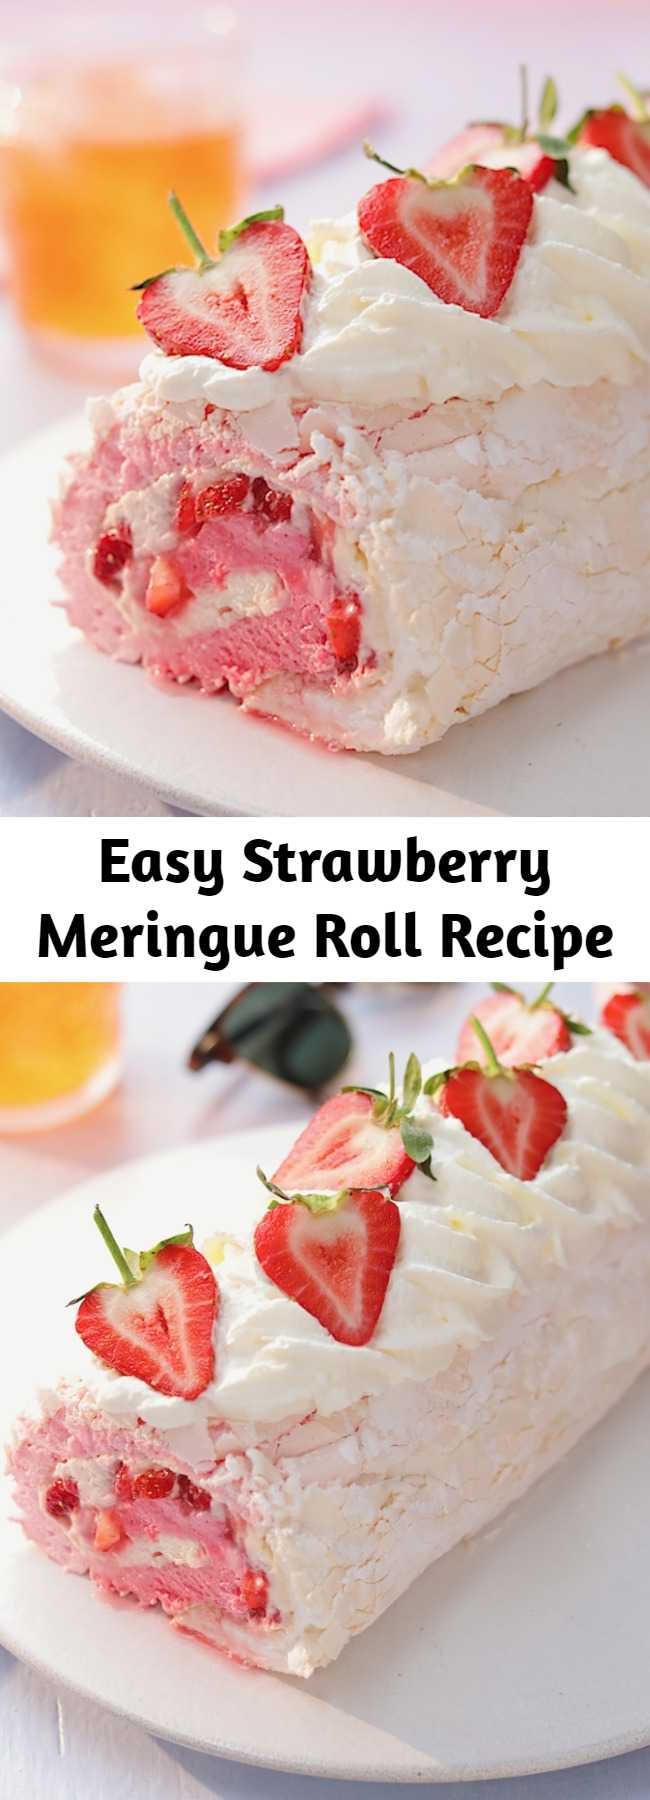 Easy Strawberry Meringue Roll Recipe - We've combined a pavlova and a swiss roll to make your ultimate fruity dessert! This strawberry meringue roll is a sure crowd pleaser.